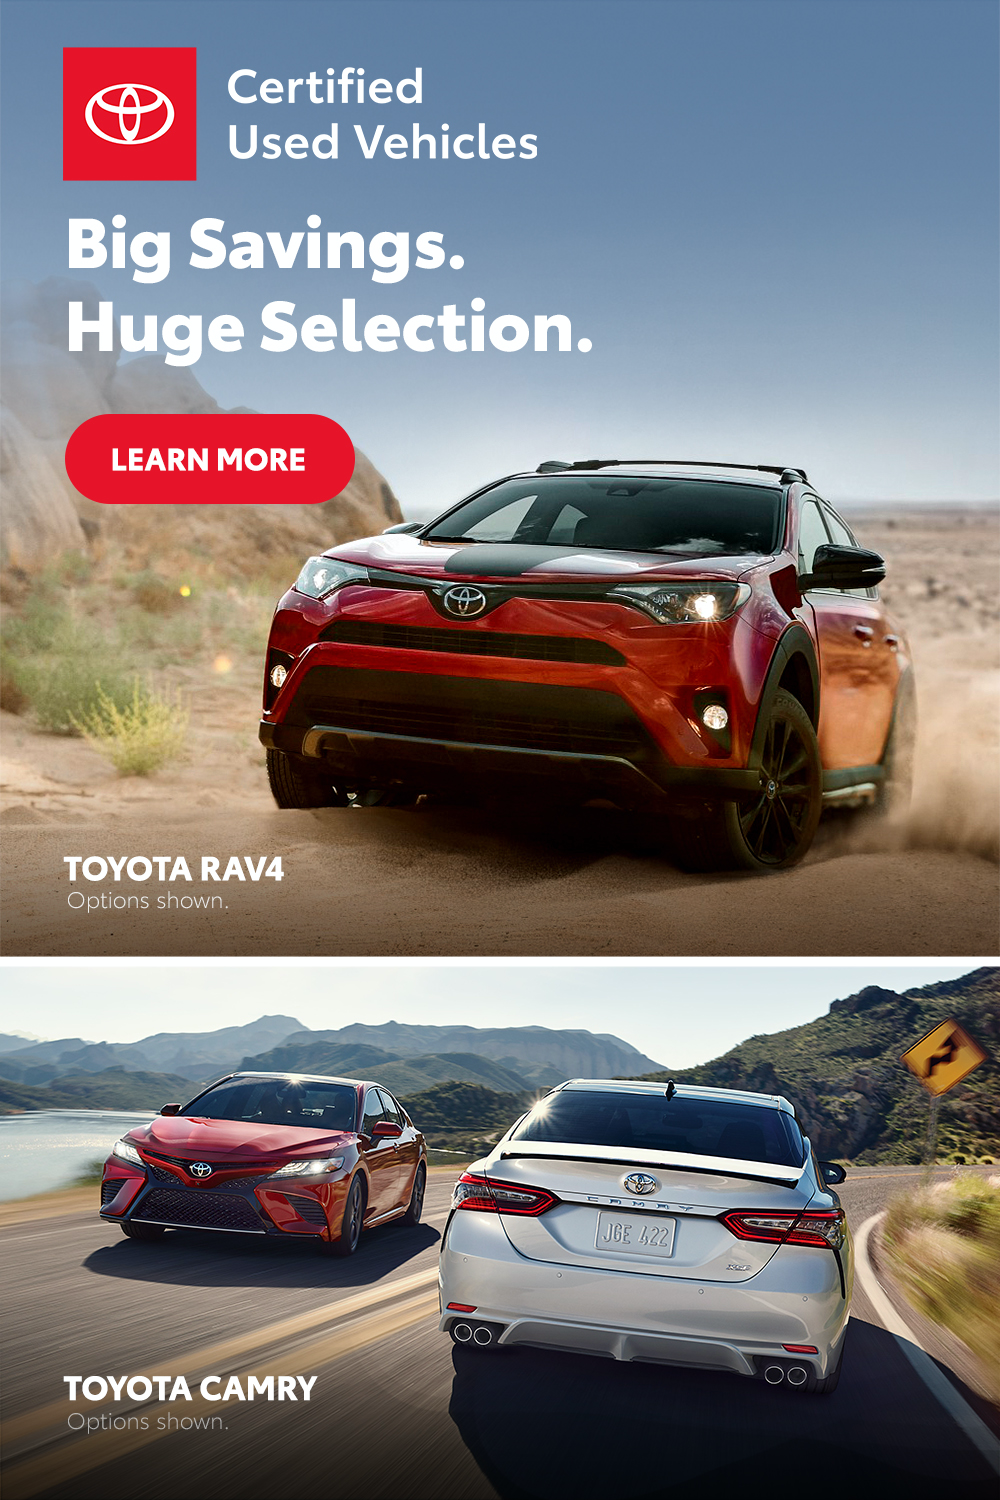 Pin On Toyota Certified Used Vehicles